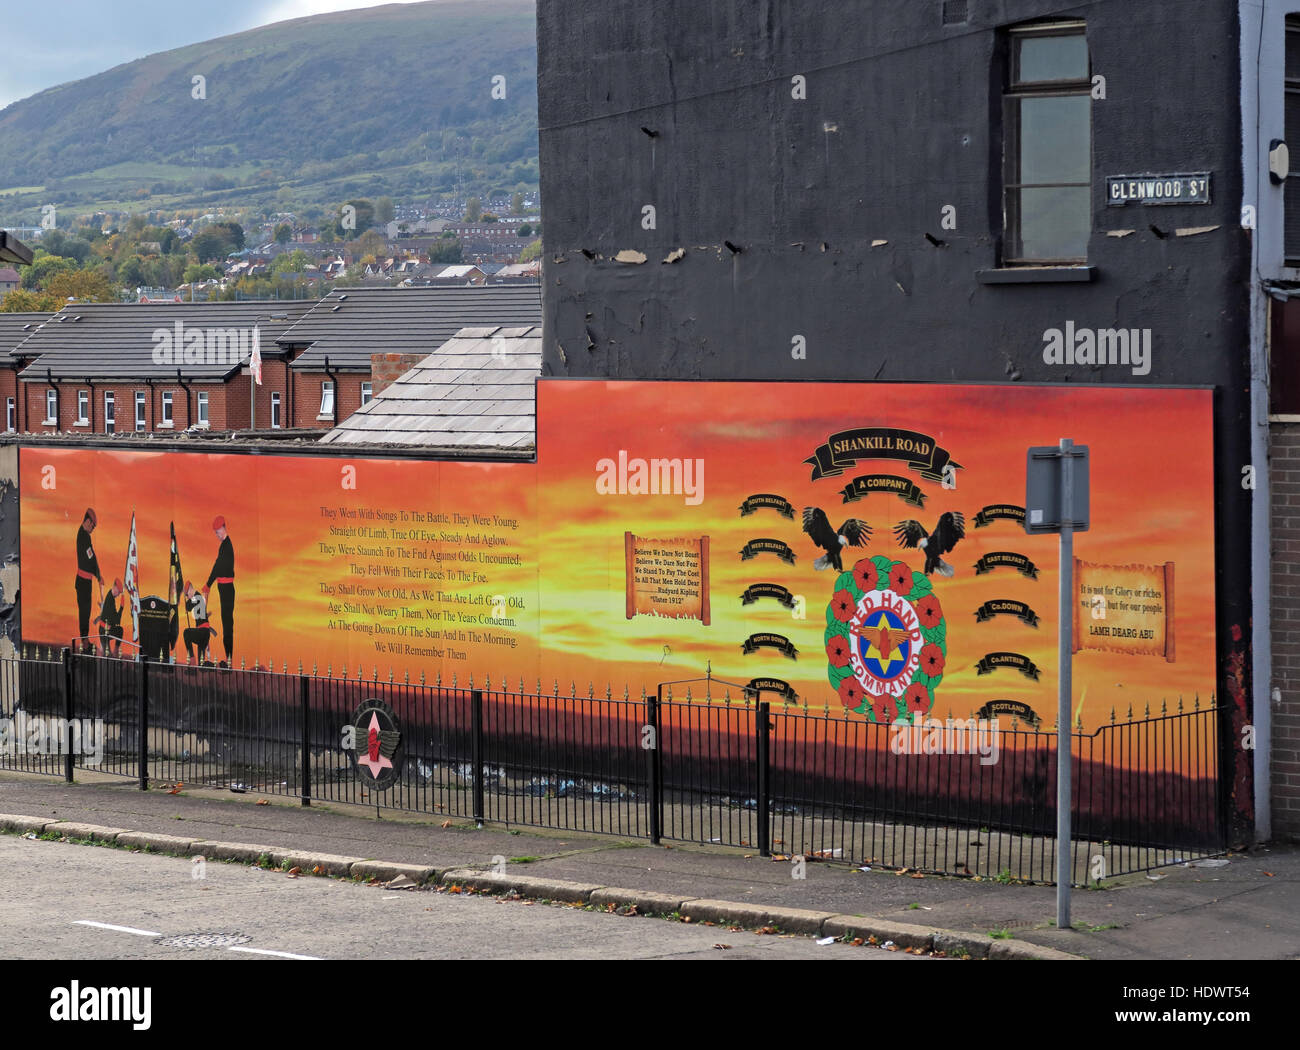 Red hand,Ulster,memorial,UFF,Unionist,mural,off,Shankill,rd,Road,West Belfast,Northern Ireland,UK,Ireland,fighter,fighting,Glenwood,St,street,A,Company,battalion,ACompany,gable,end,sunset,gable-end,A Company,gable end,GoTonySmith,@HotpixUK,Tony,Smith,UK,GB,Great,Britain,United,Kingdom,Irish,British,Ireland,problem,with,problem with,issue with,NI,Northern,Northern Ireland,Belfast,City,Centre,Art,Artists,the,troubles,The Troubles,Good Friday Agreement,Peace,honour,painting,wall,walls,tribute,Unionist,unionism,Protestant,community,Fight,Justice,West,Beal,feirste,martyrs,social,tour,tourism,tourists,urban,six,counties,6,backdrop,county,Antrim,UVF,DUP,British,GB,Empire,Buy Pictures of,Buy Images Of,Images of,Stock Images,Tony Smith,United Kingdom,Great Britain,British Isles,Belfast protestant community,Peoples army